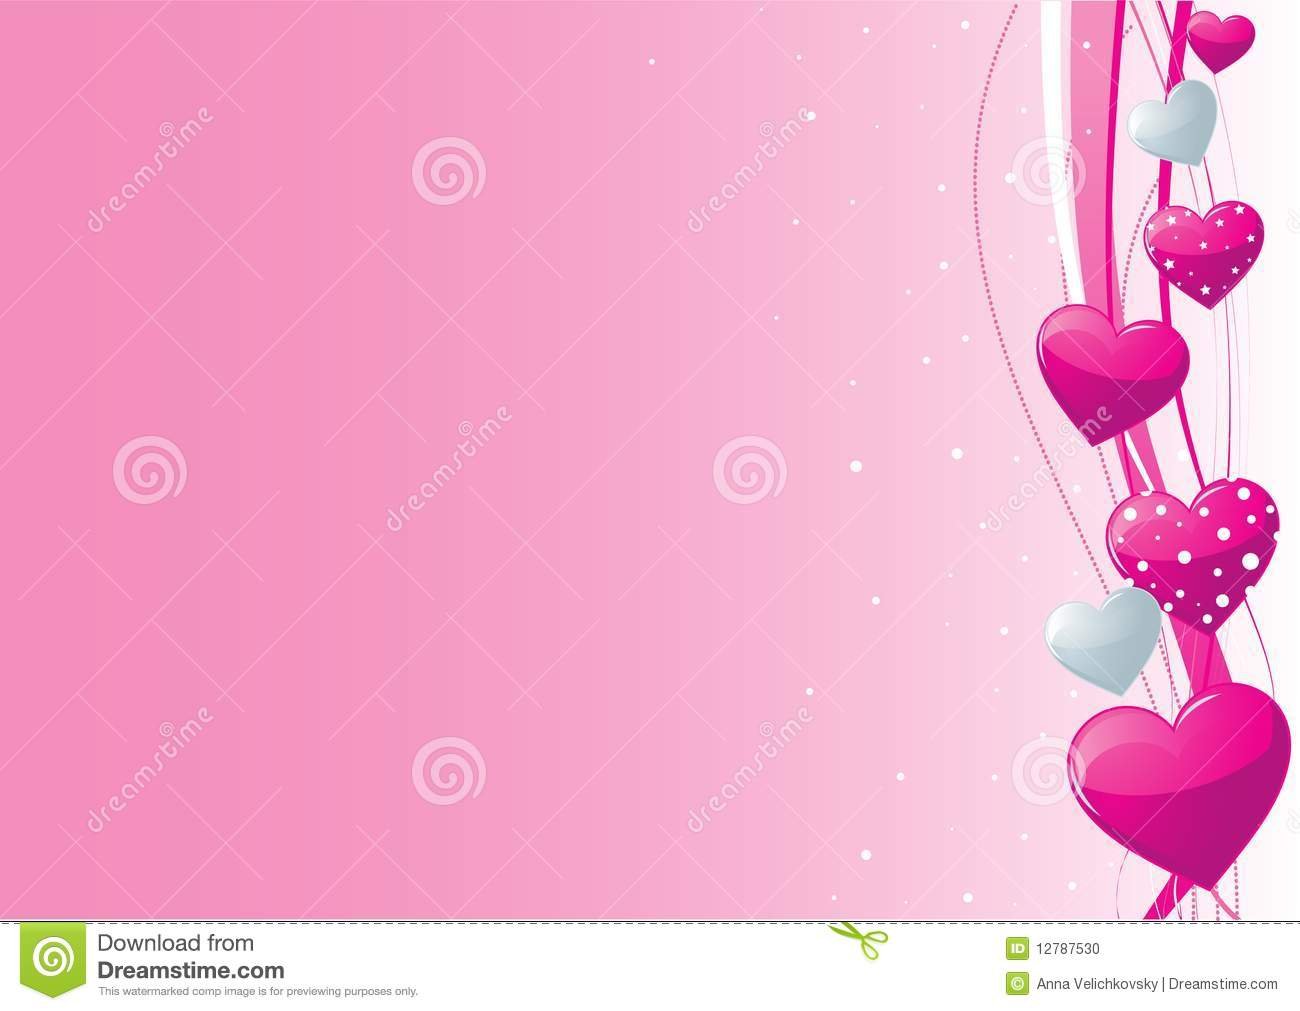 Cute Baby Animals Wallpaper Icon Pink And Grey Valentine Heart Background Stock Photo